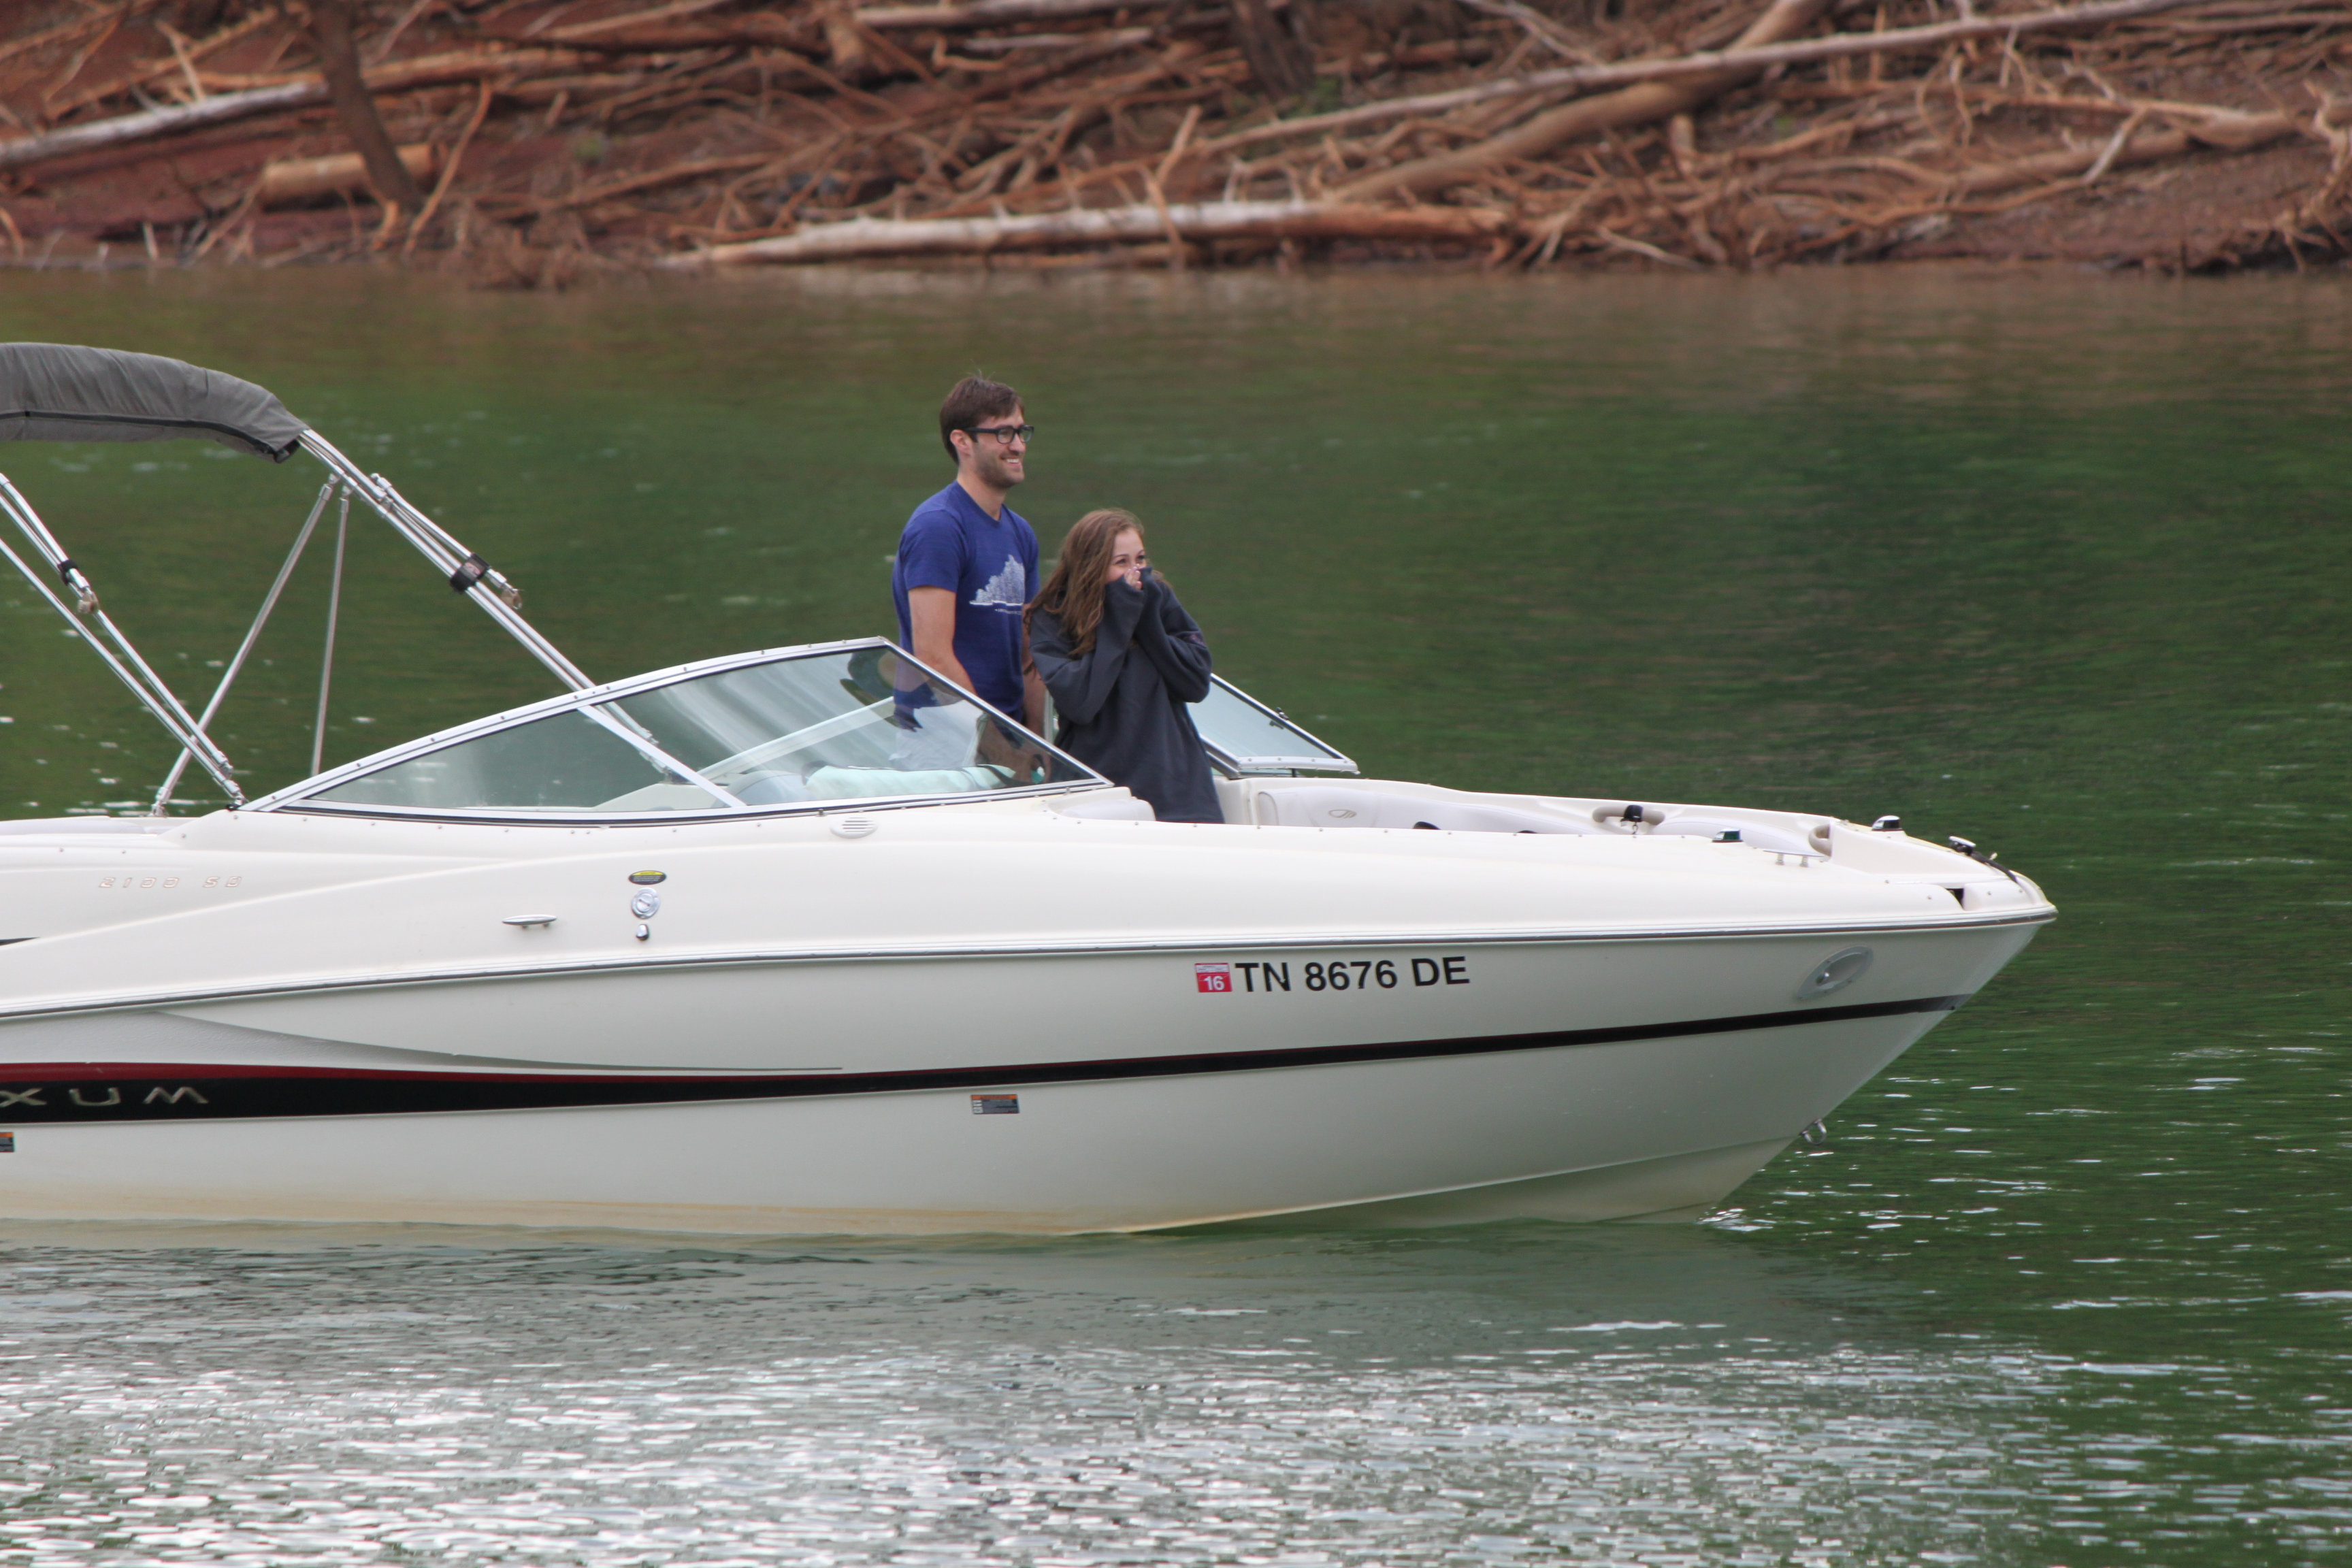 Image 5 of Lauren and Adam's Proposal on the Boat